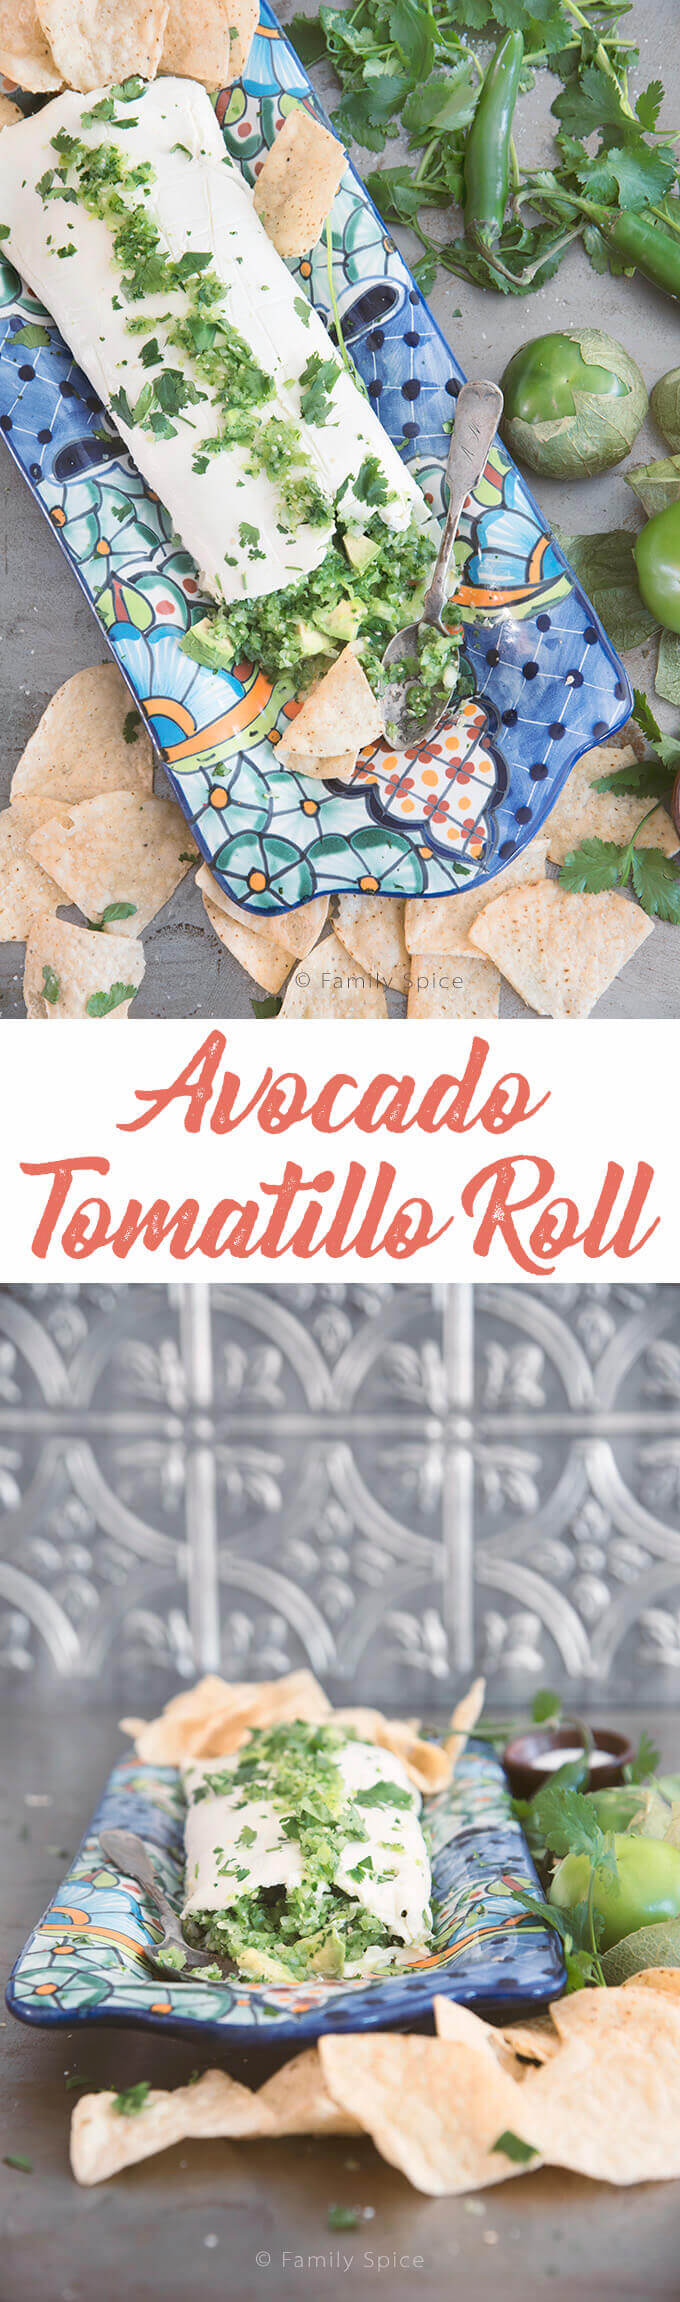 This Avocado Tomatillo Roll is a unique appetizer that is sure to wow your guests with creamy avocados, tangy tomatillos and spicy serrano peppers wrapped in a blanket of cream cheese. --- FamilySpice.com